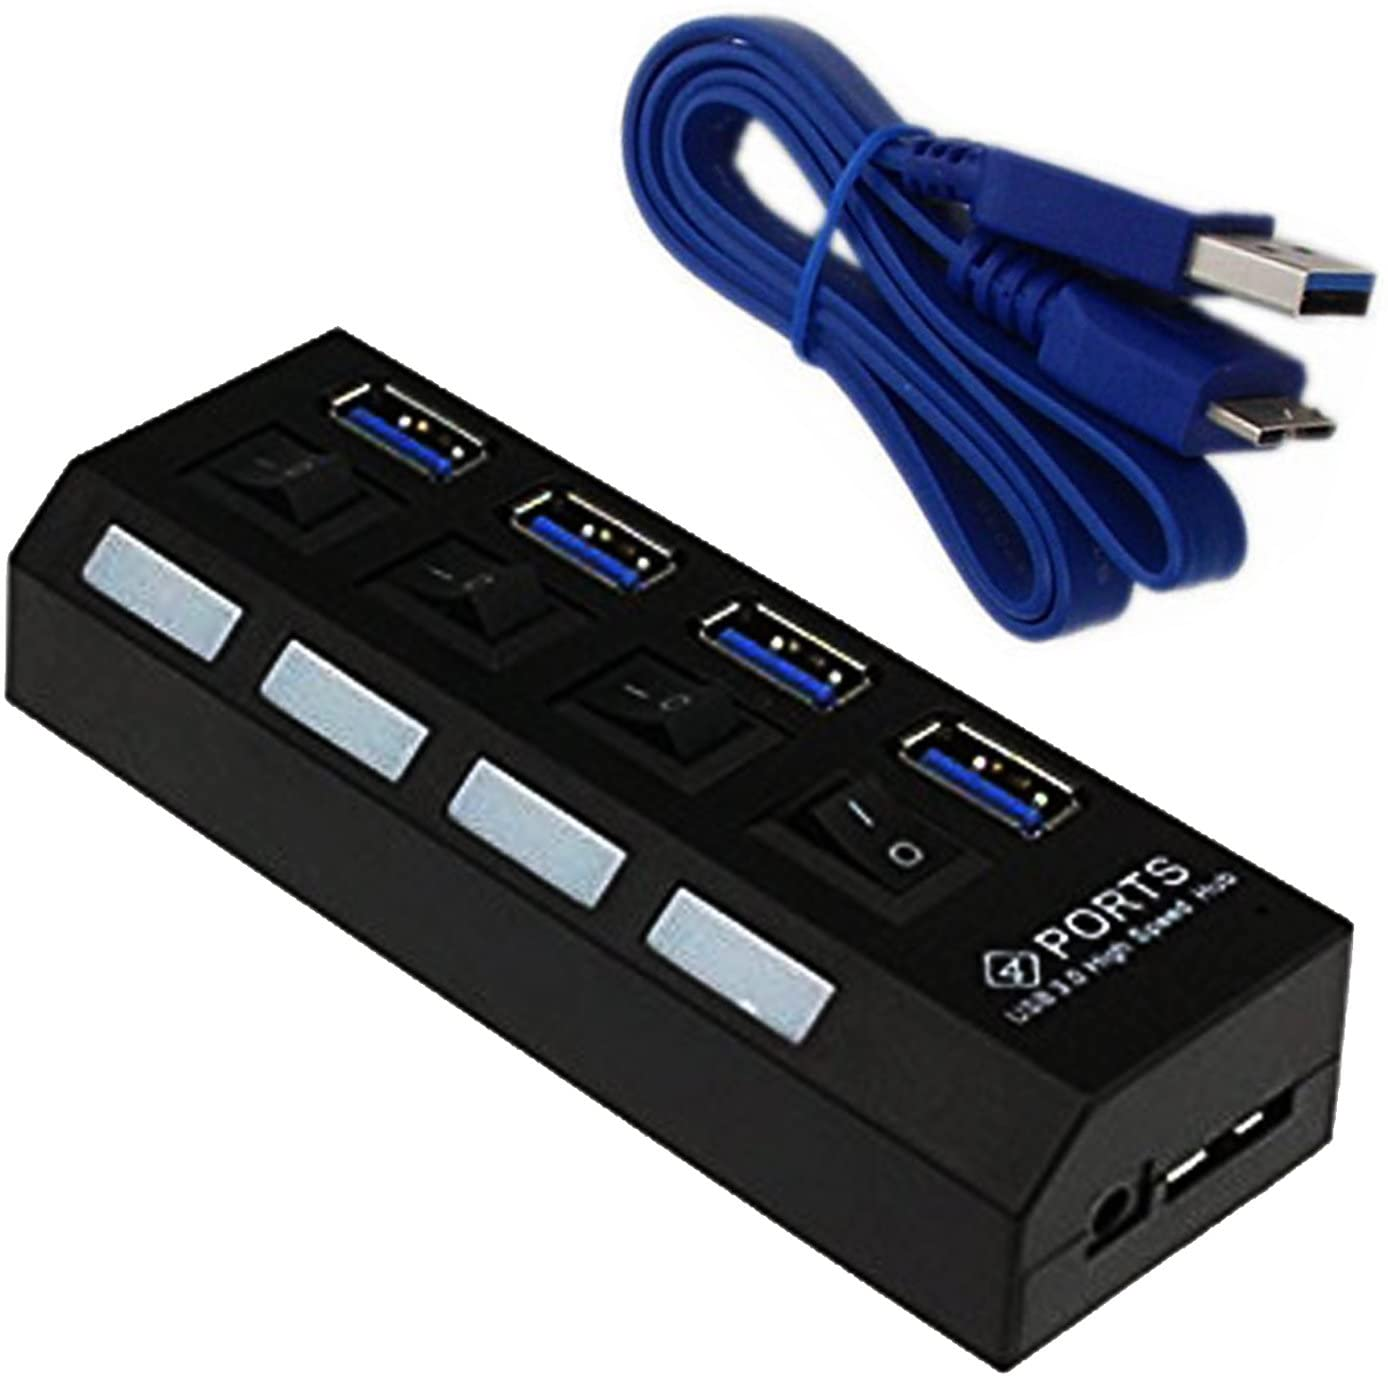 Fashionlive USB Hub SuperSpeed 4 Port USB 3.0 Hub with Individual Power Switches and LEDs with 2ft USB Data Cable